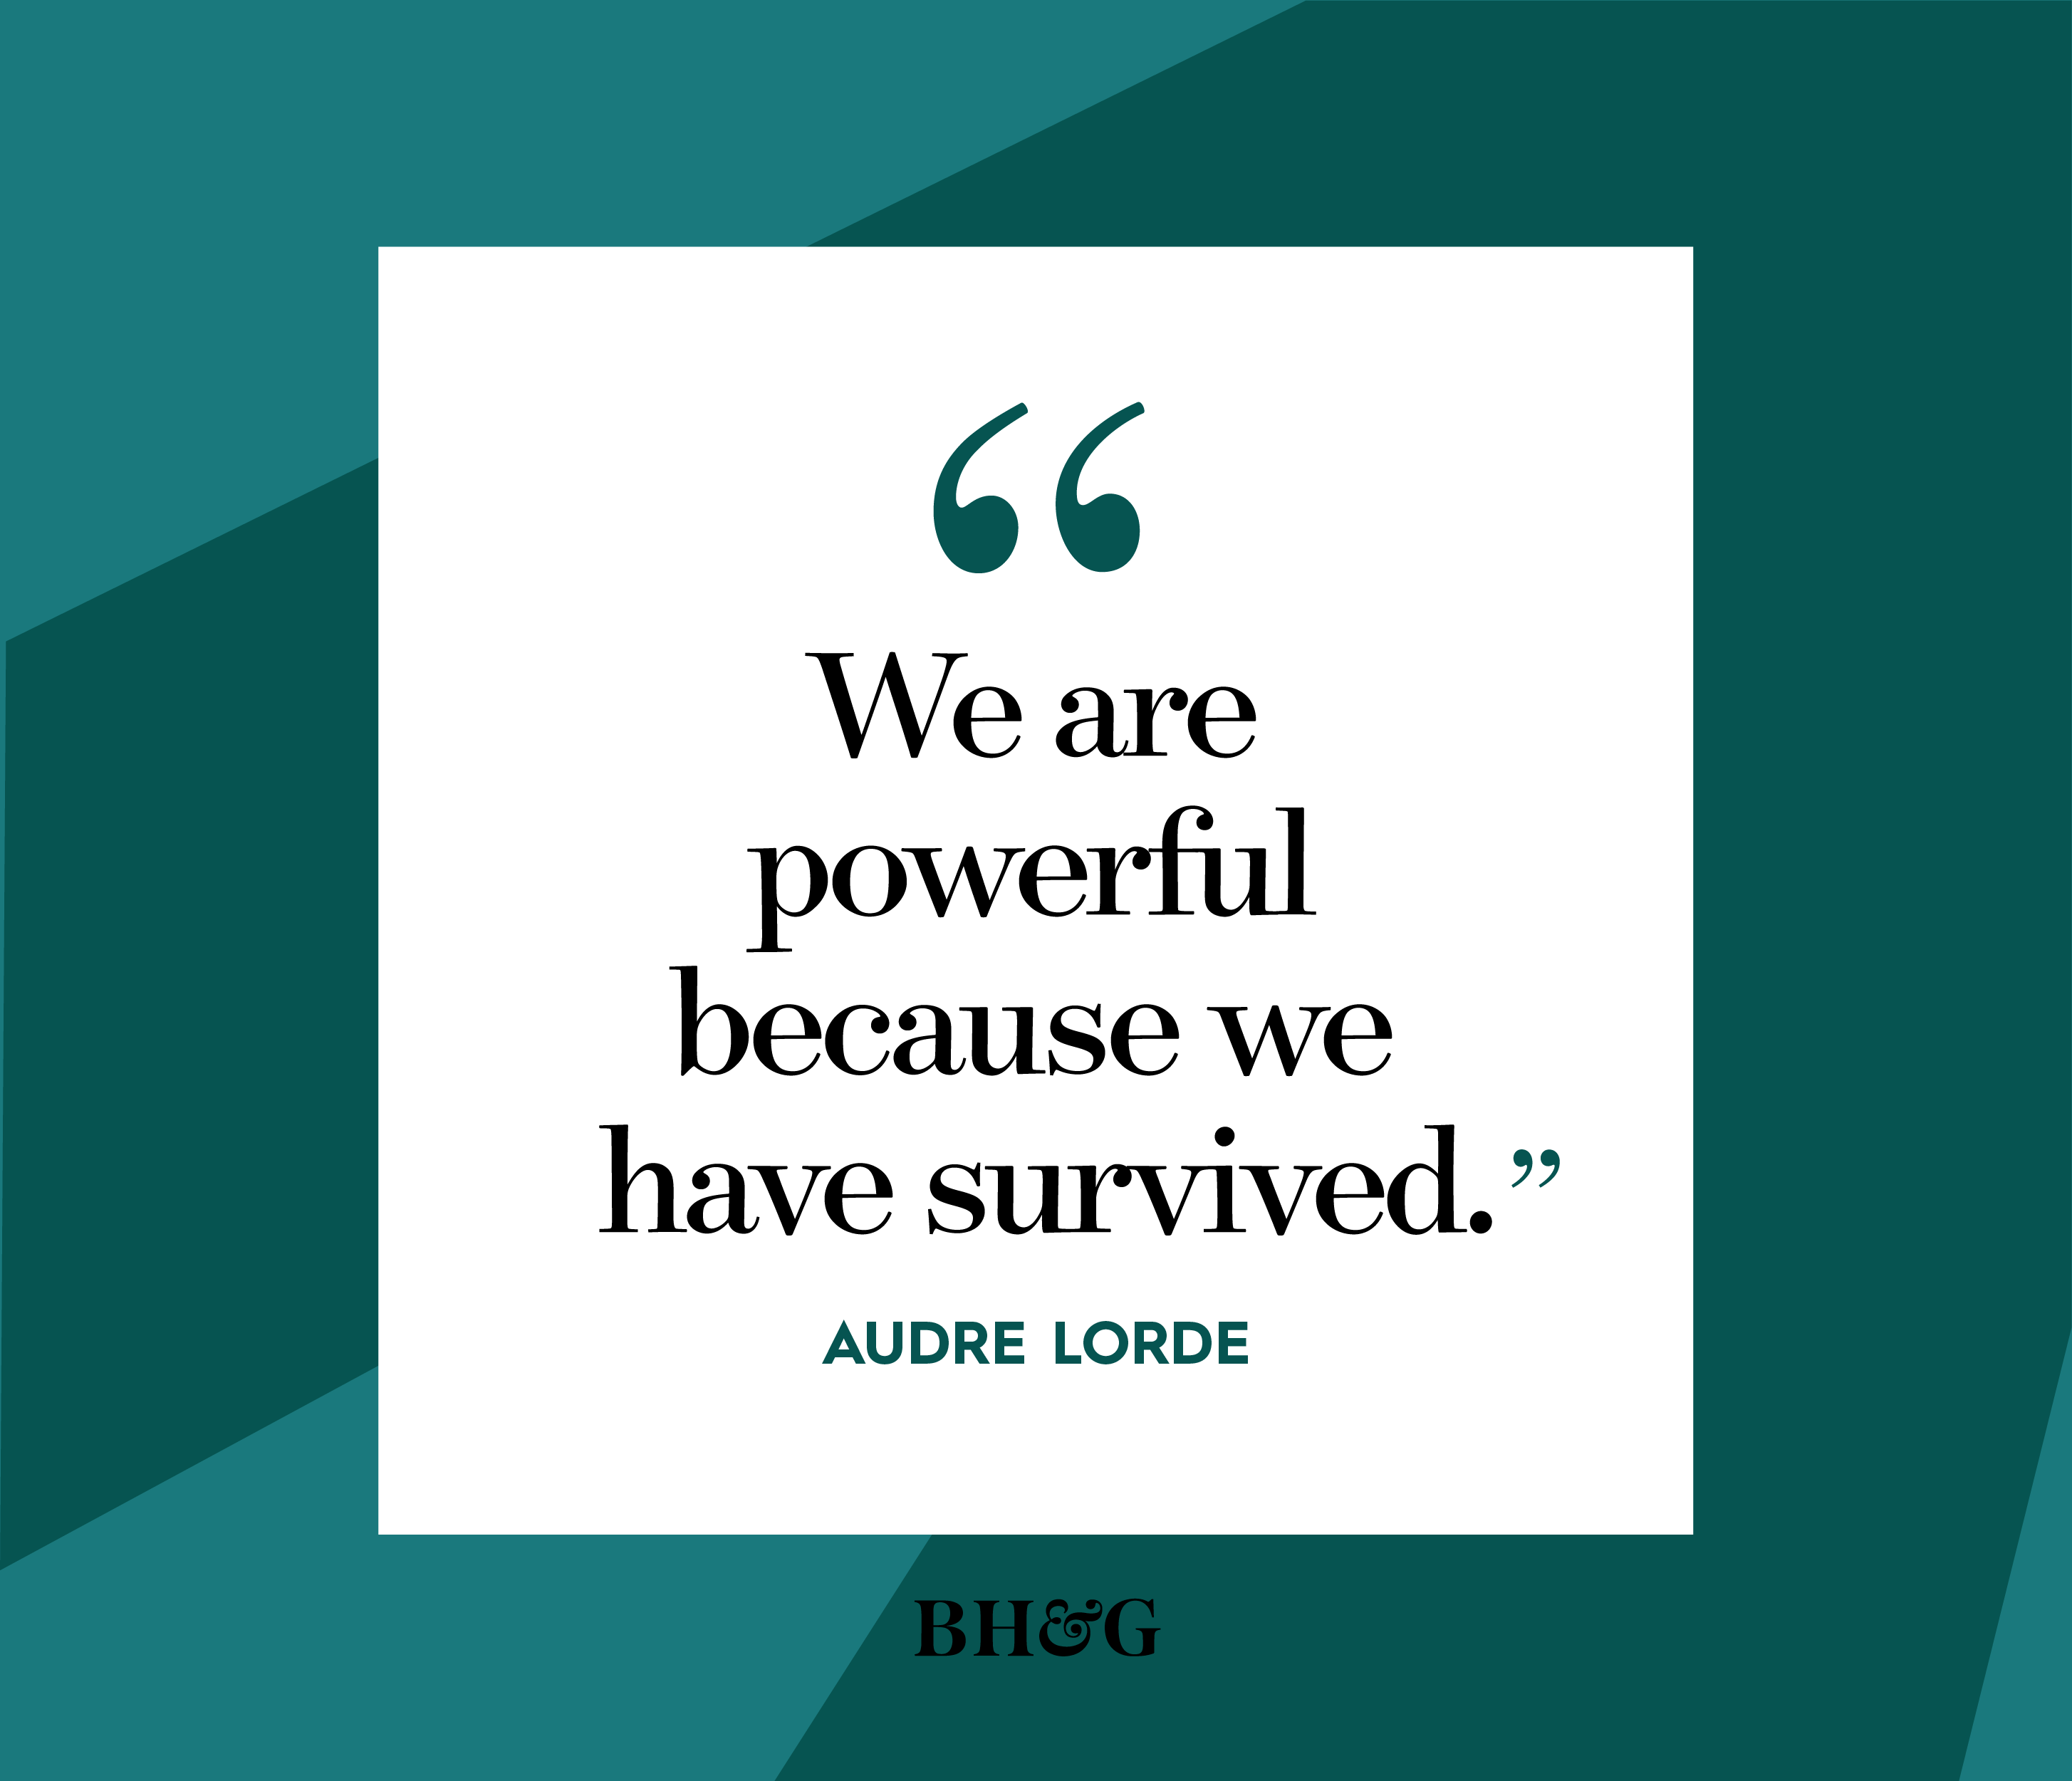 audre lorde quote on green background